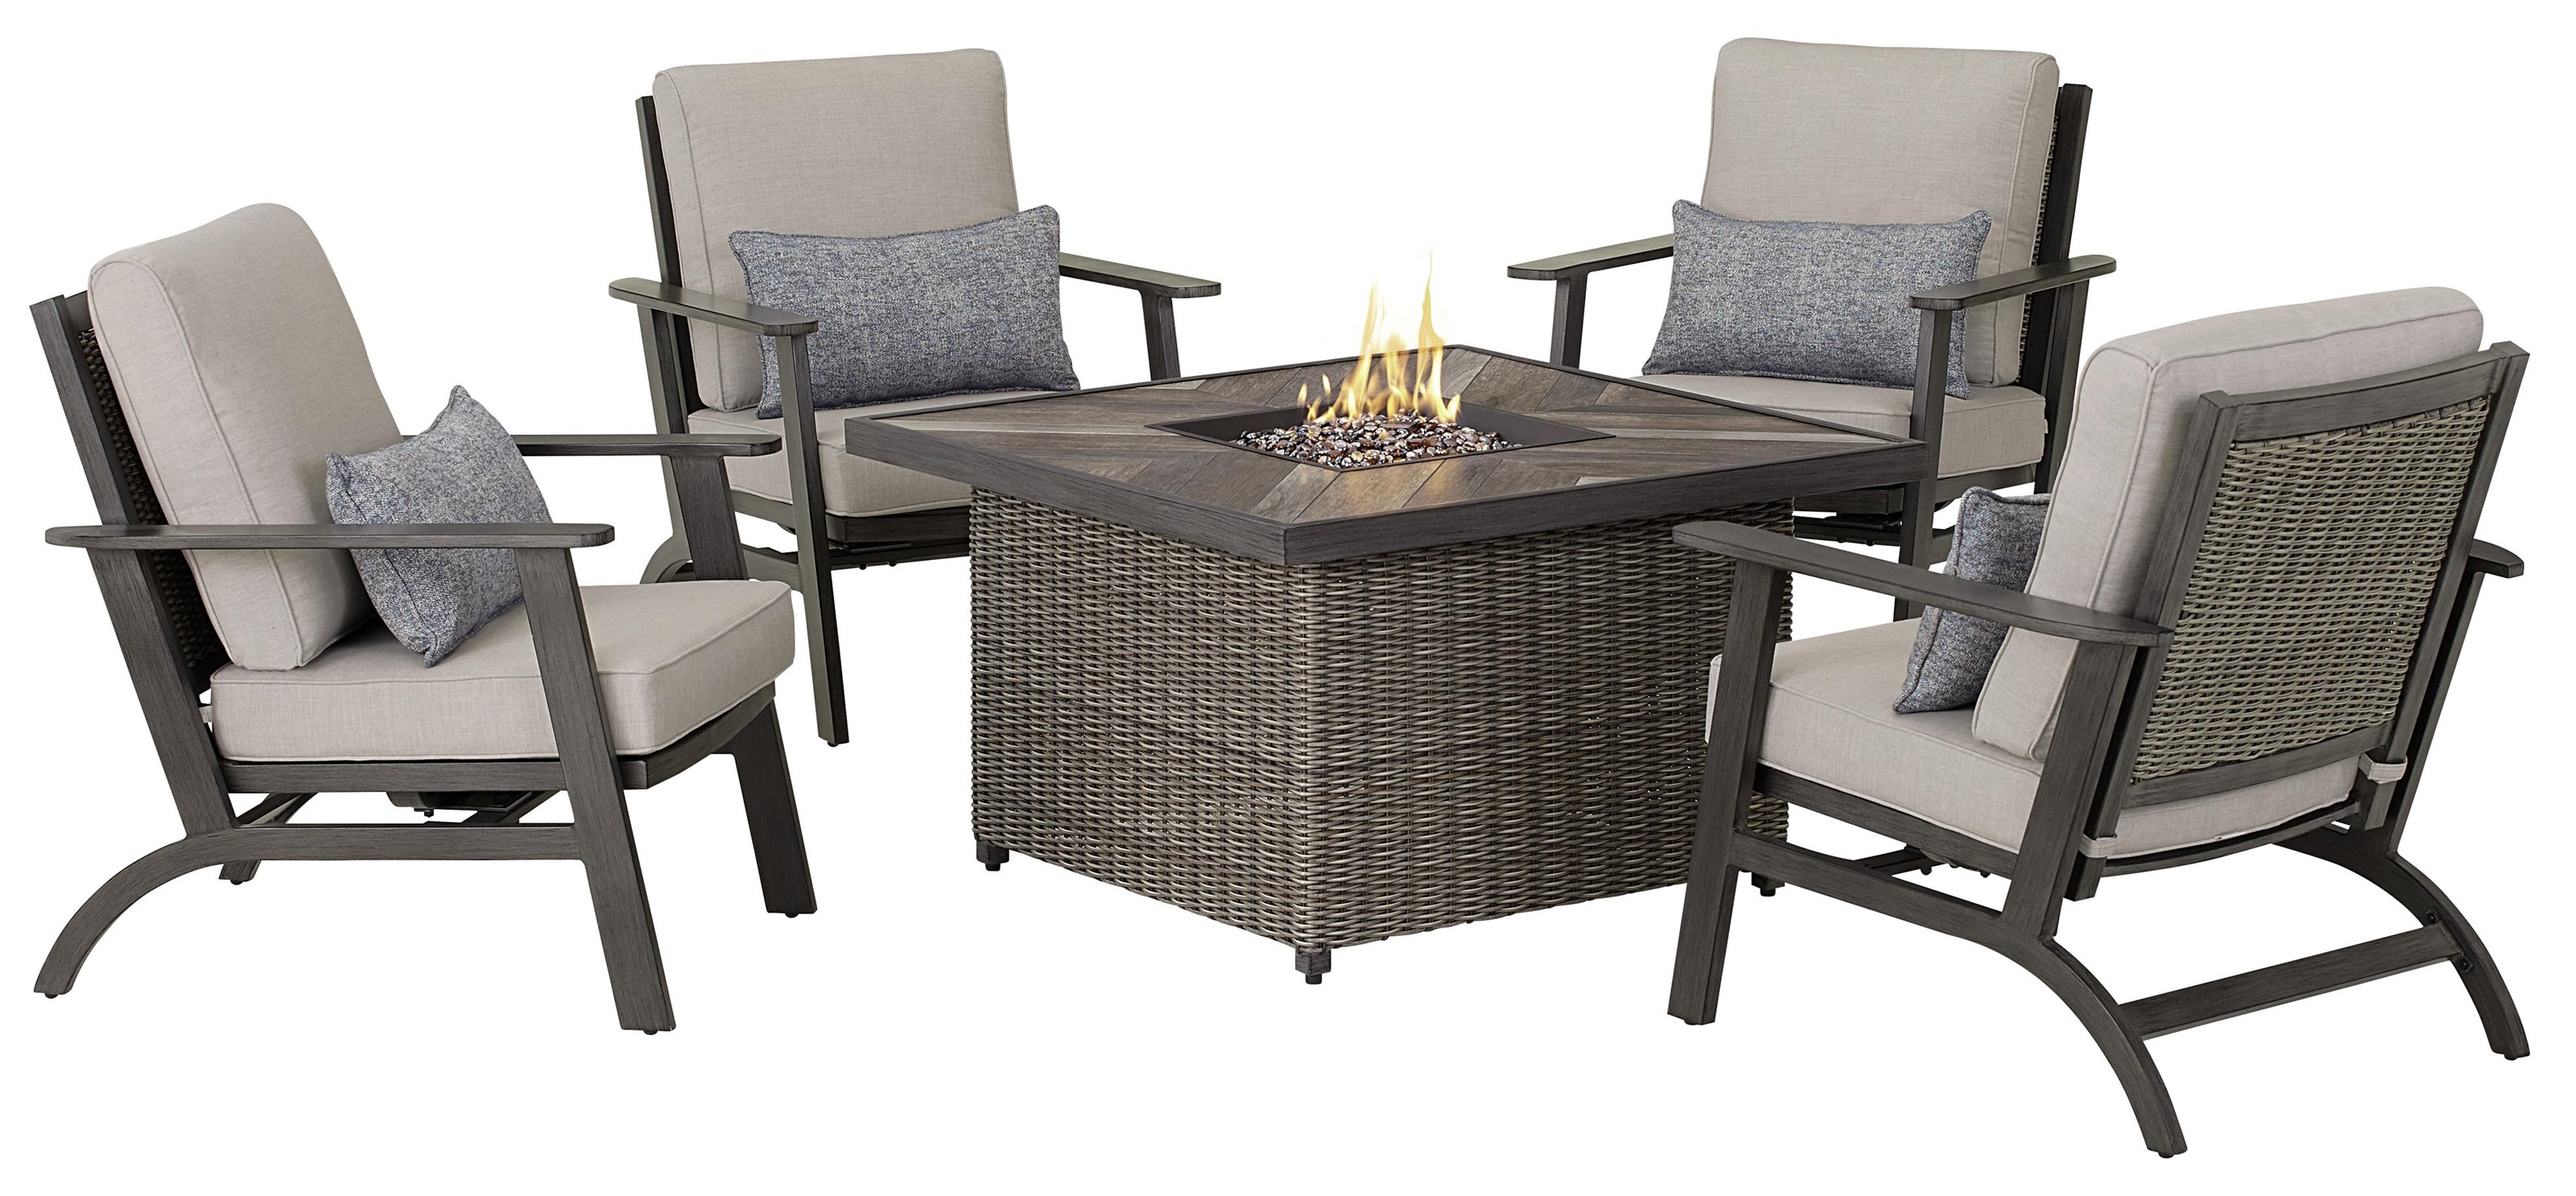 Addison Firepit and 4 Motion Chairs by Apricity Outdoor at Johnny Janosik